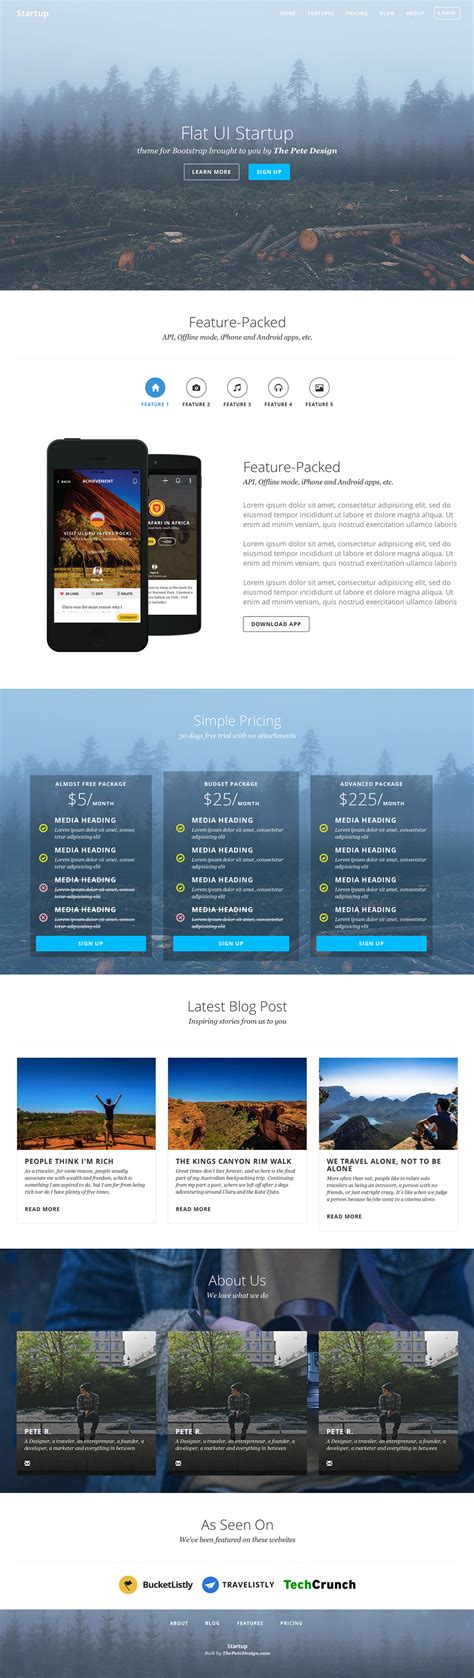 bootstrap themes flat ui flat ui startup bootstrap theme by pete r the pete design